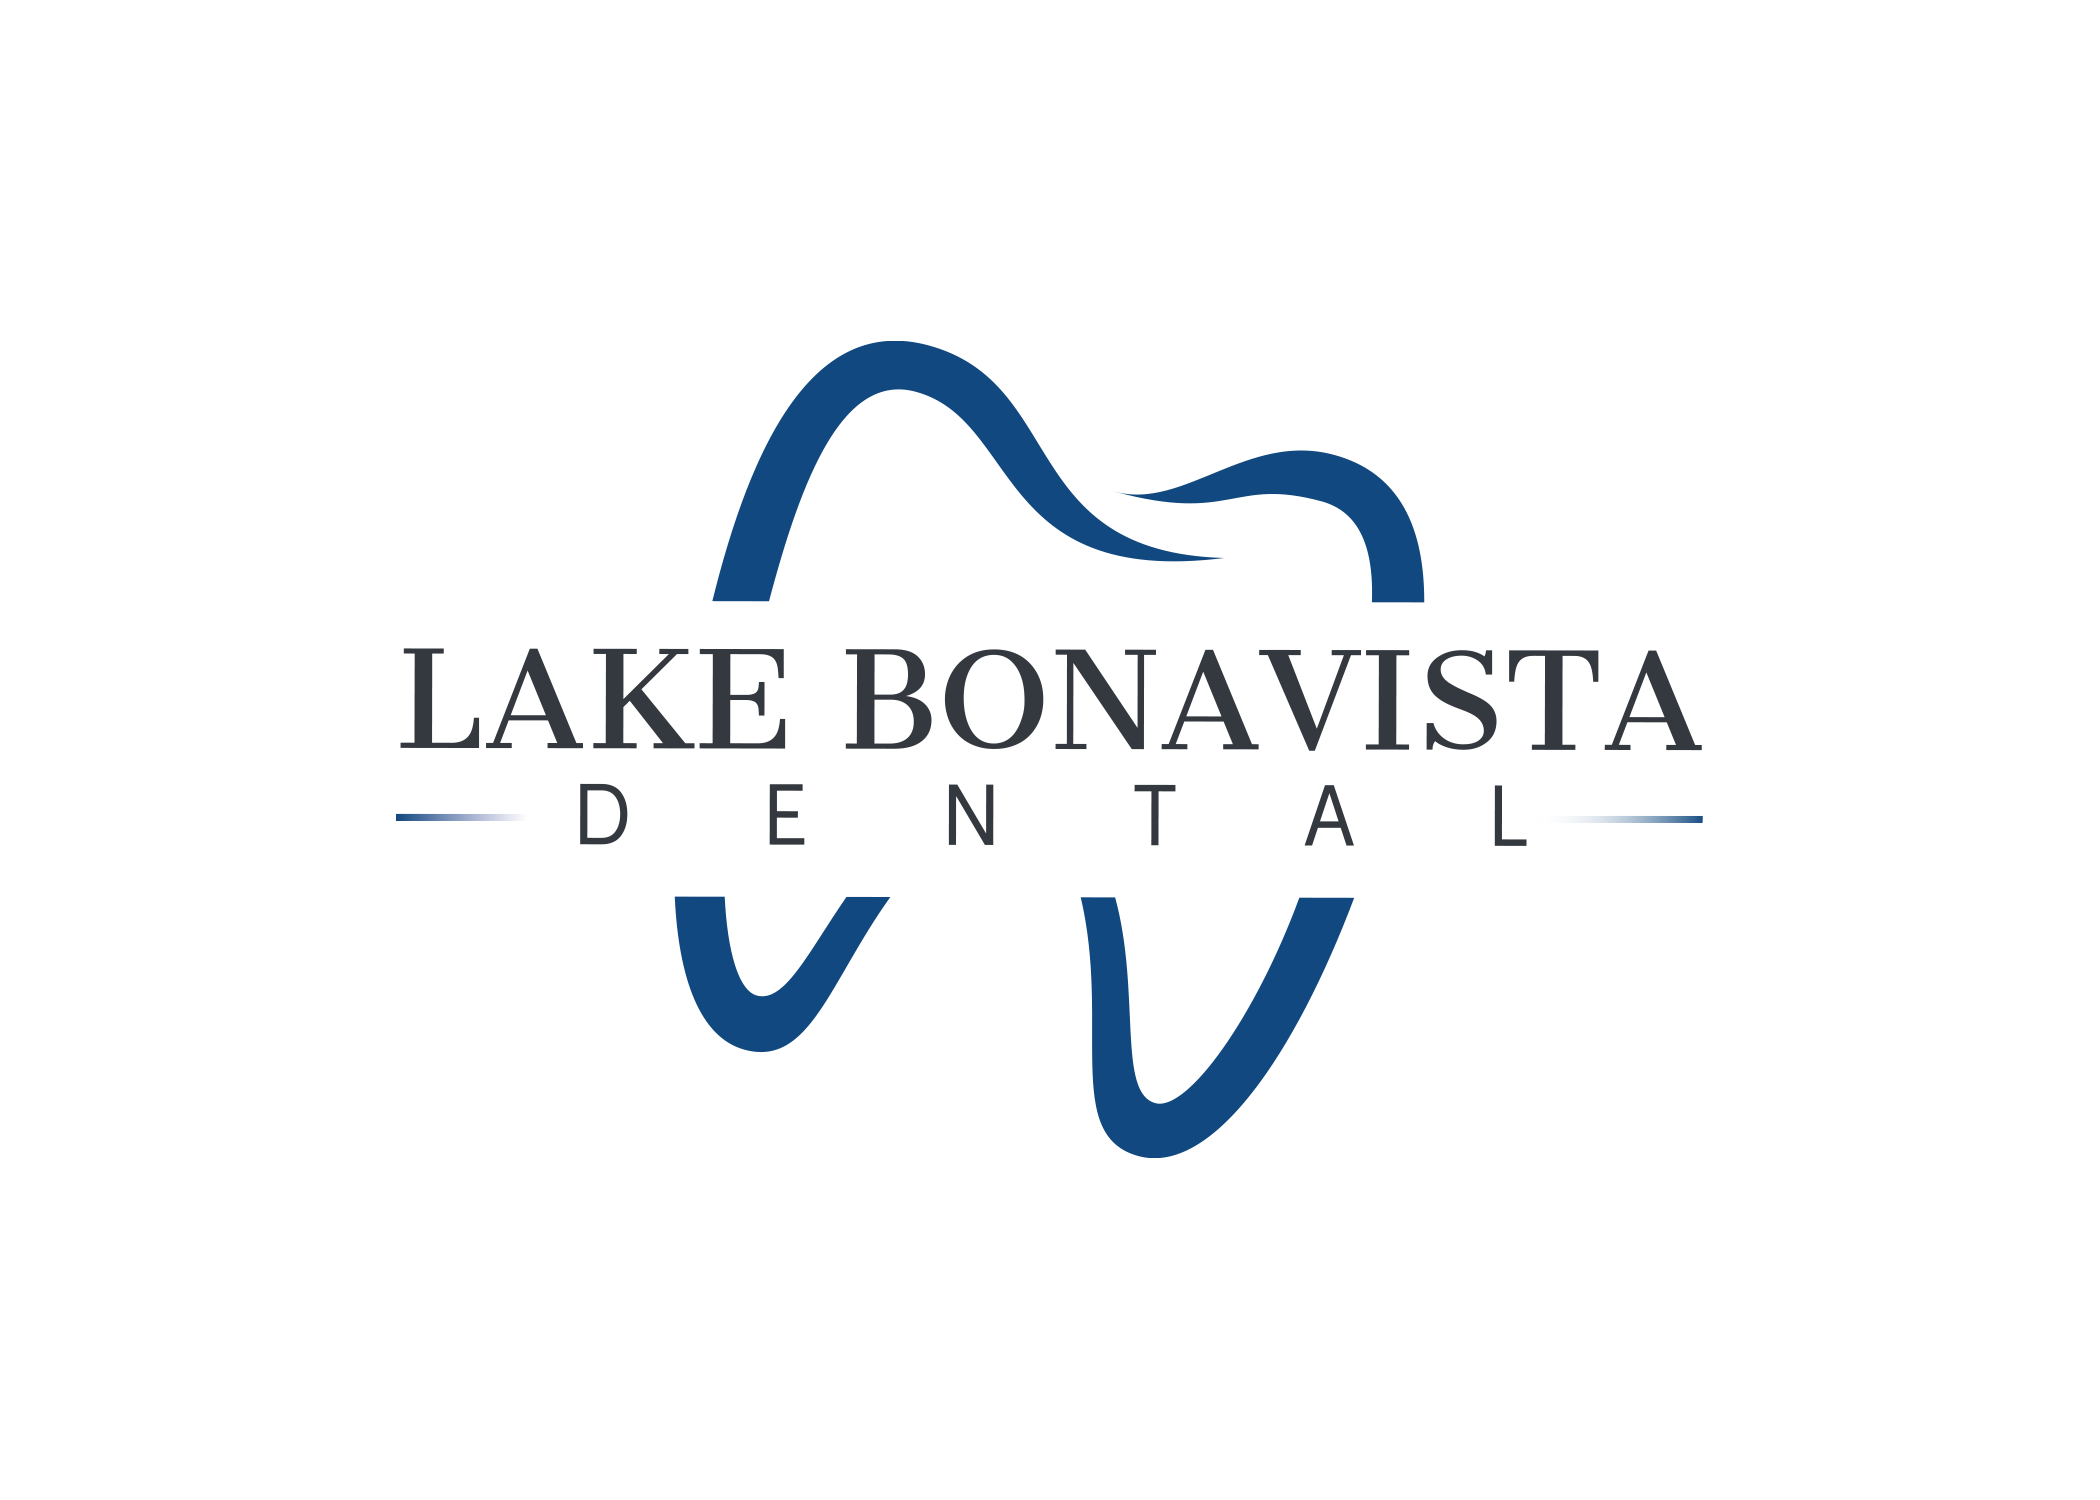 Lake Bonavista Dental Associates